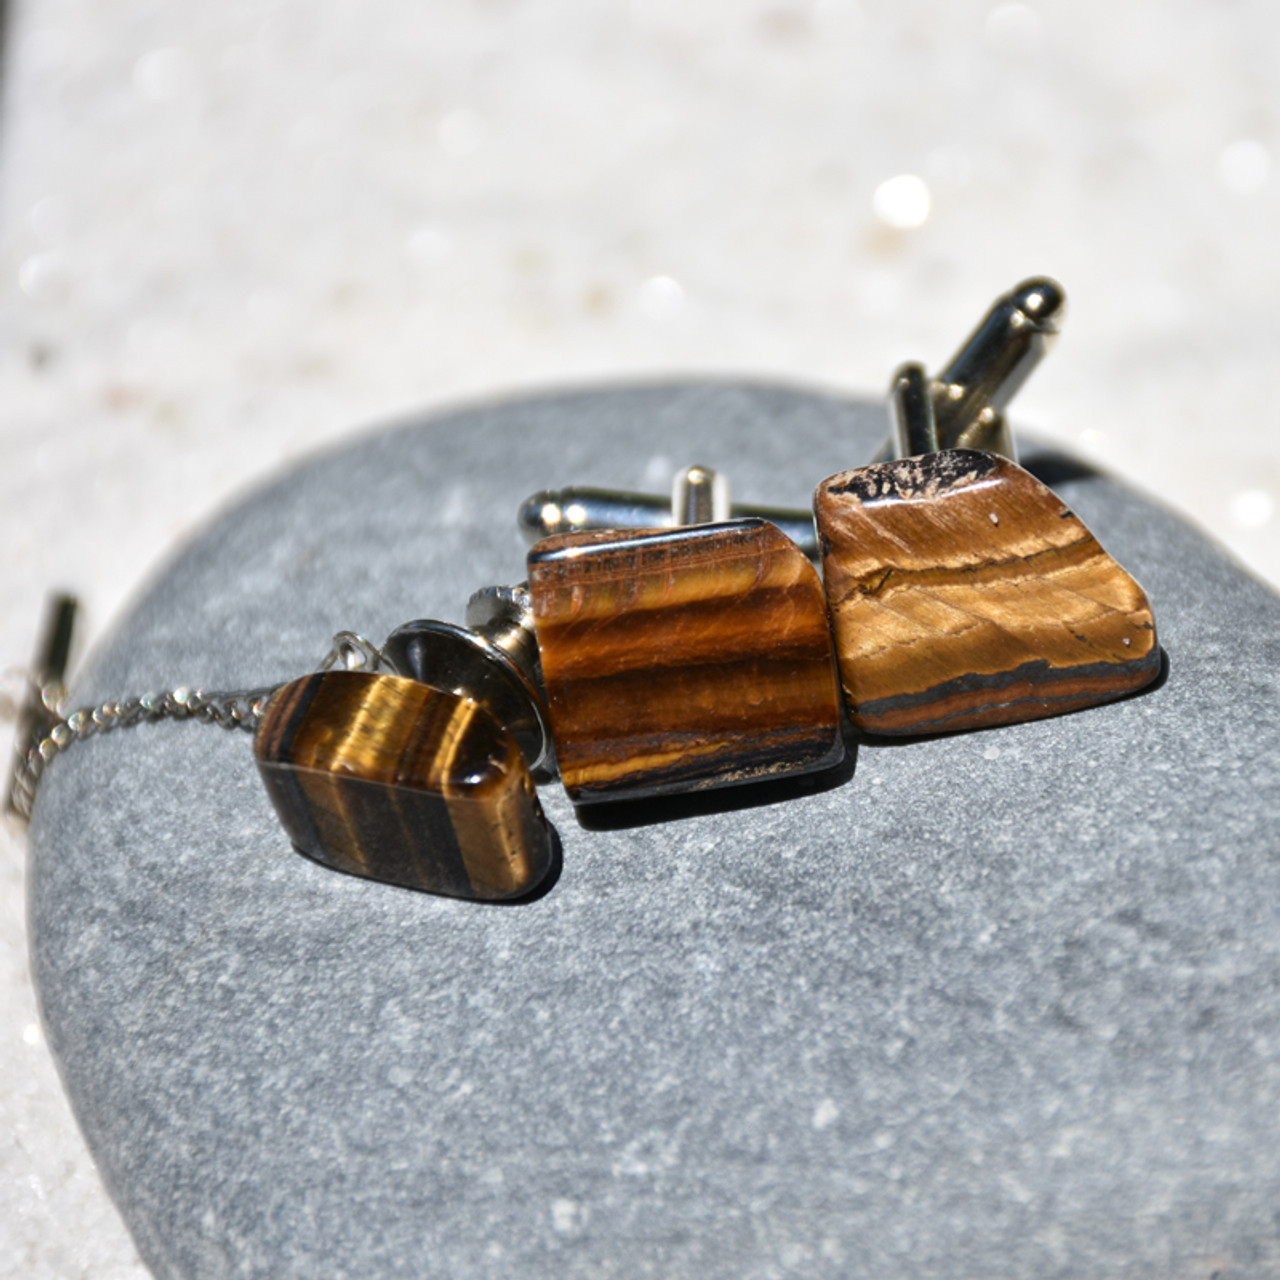 Tumbled Gold Tiger's Eye Cufflinks and Tie Tack